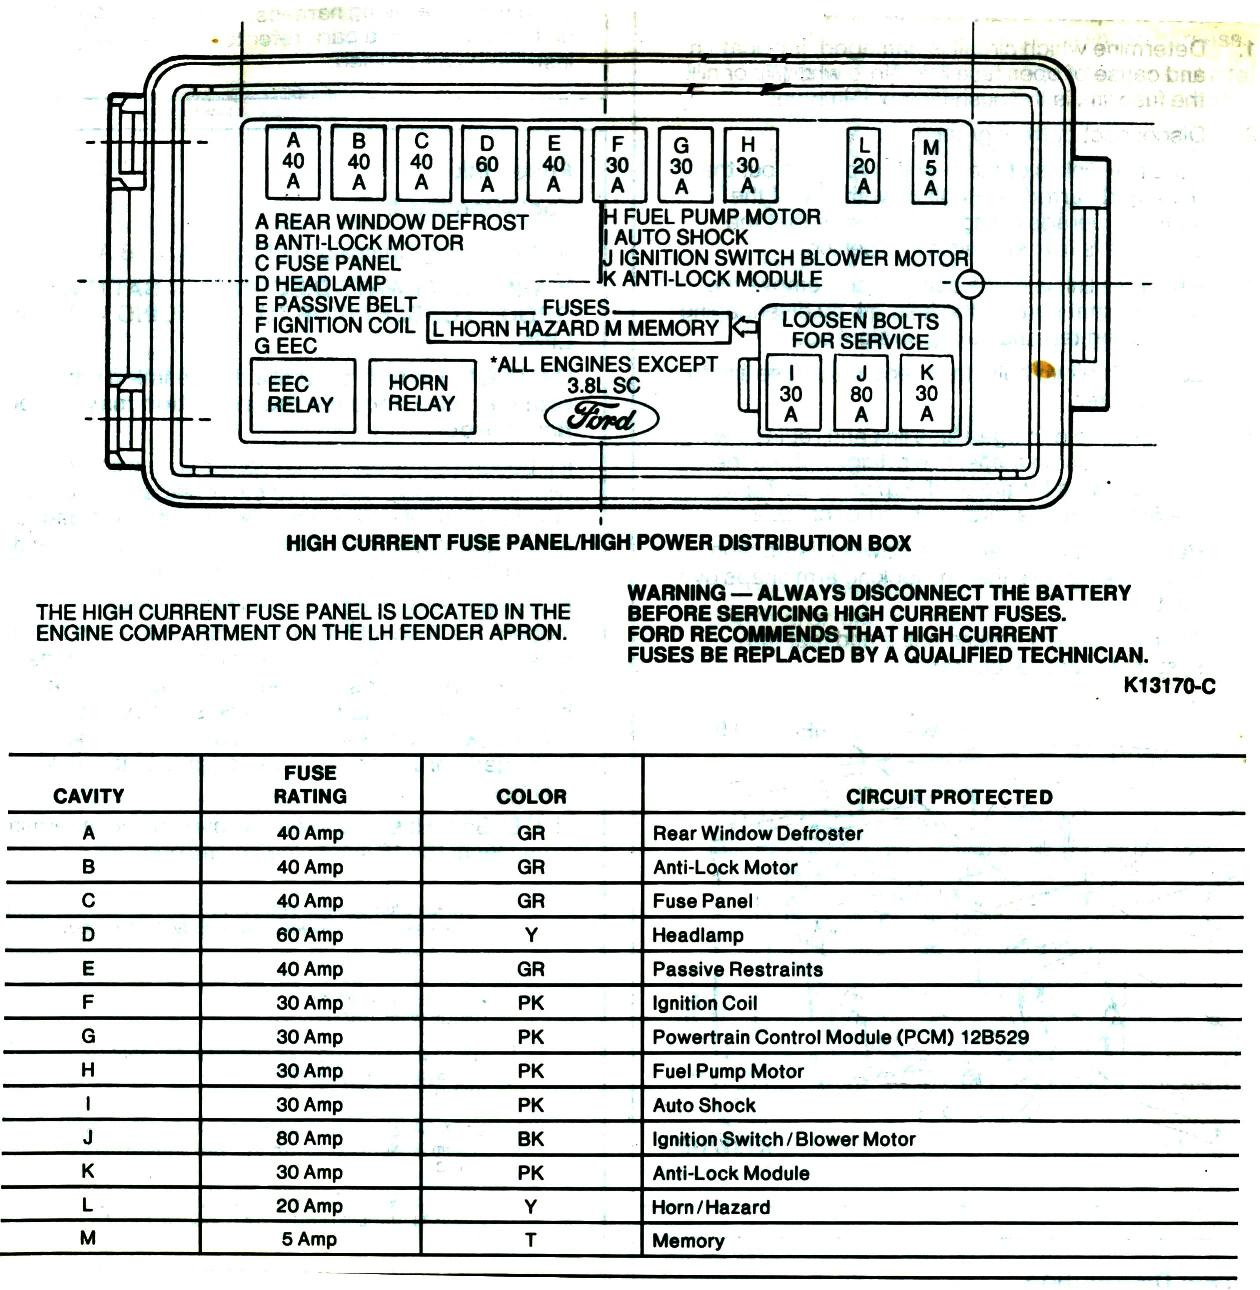 hight resolution of 1994 ford thunderbird fuse box location wiring diagram portal 2002 ford thunderbird problems 2002 ford thunderbird fuse box